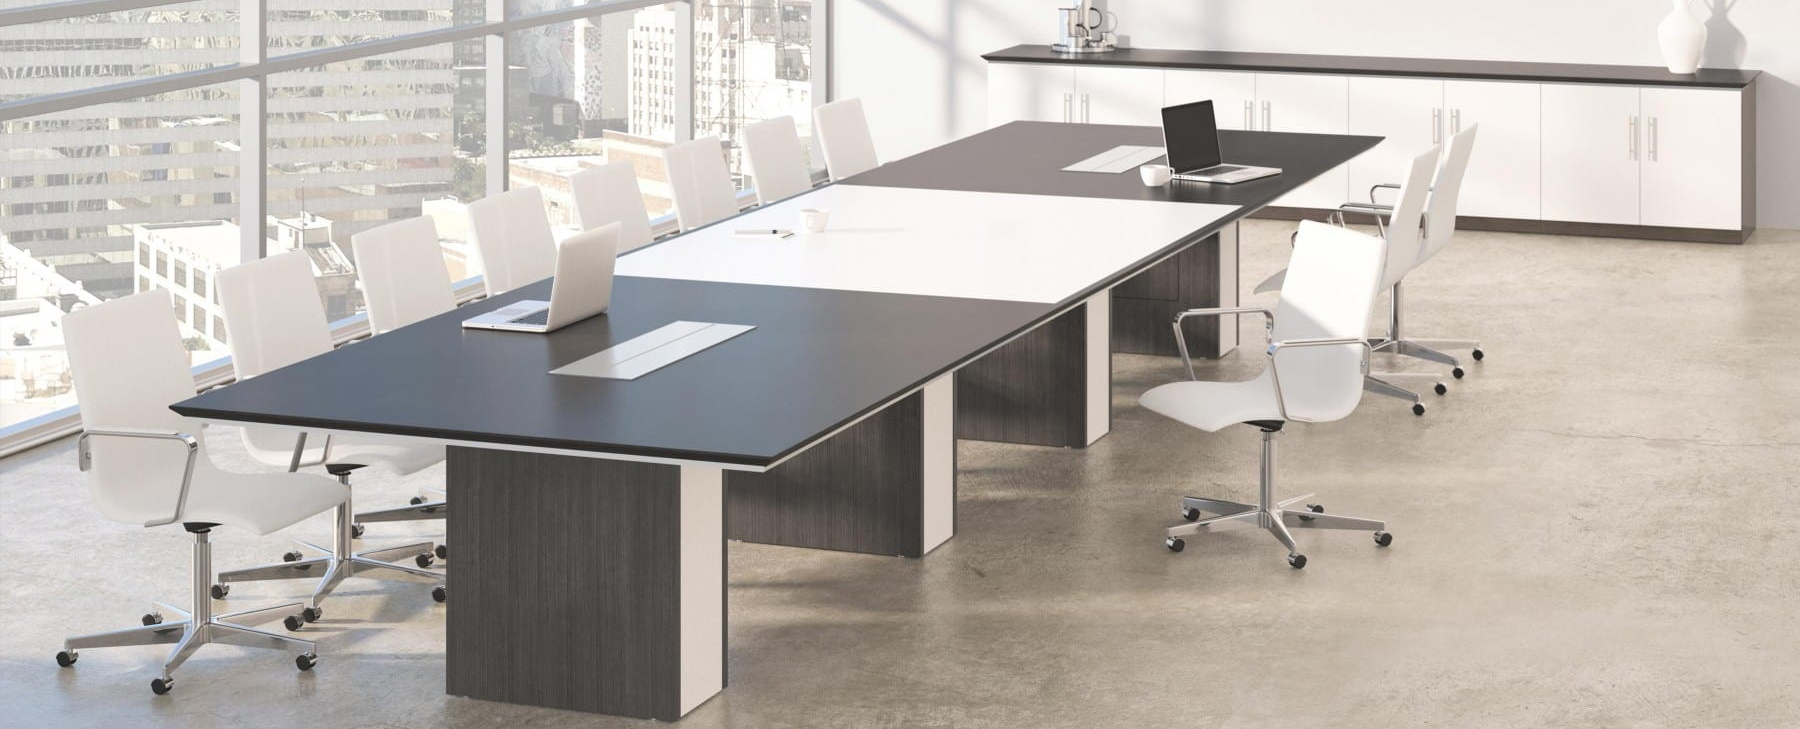 Office Furniture Store - Dallas - Conference Table 1